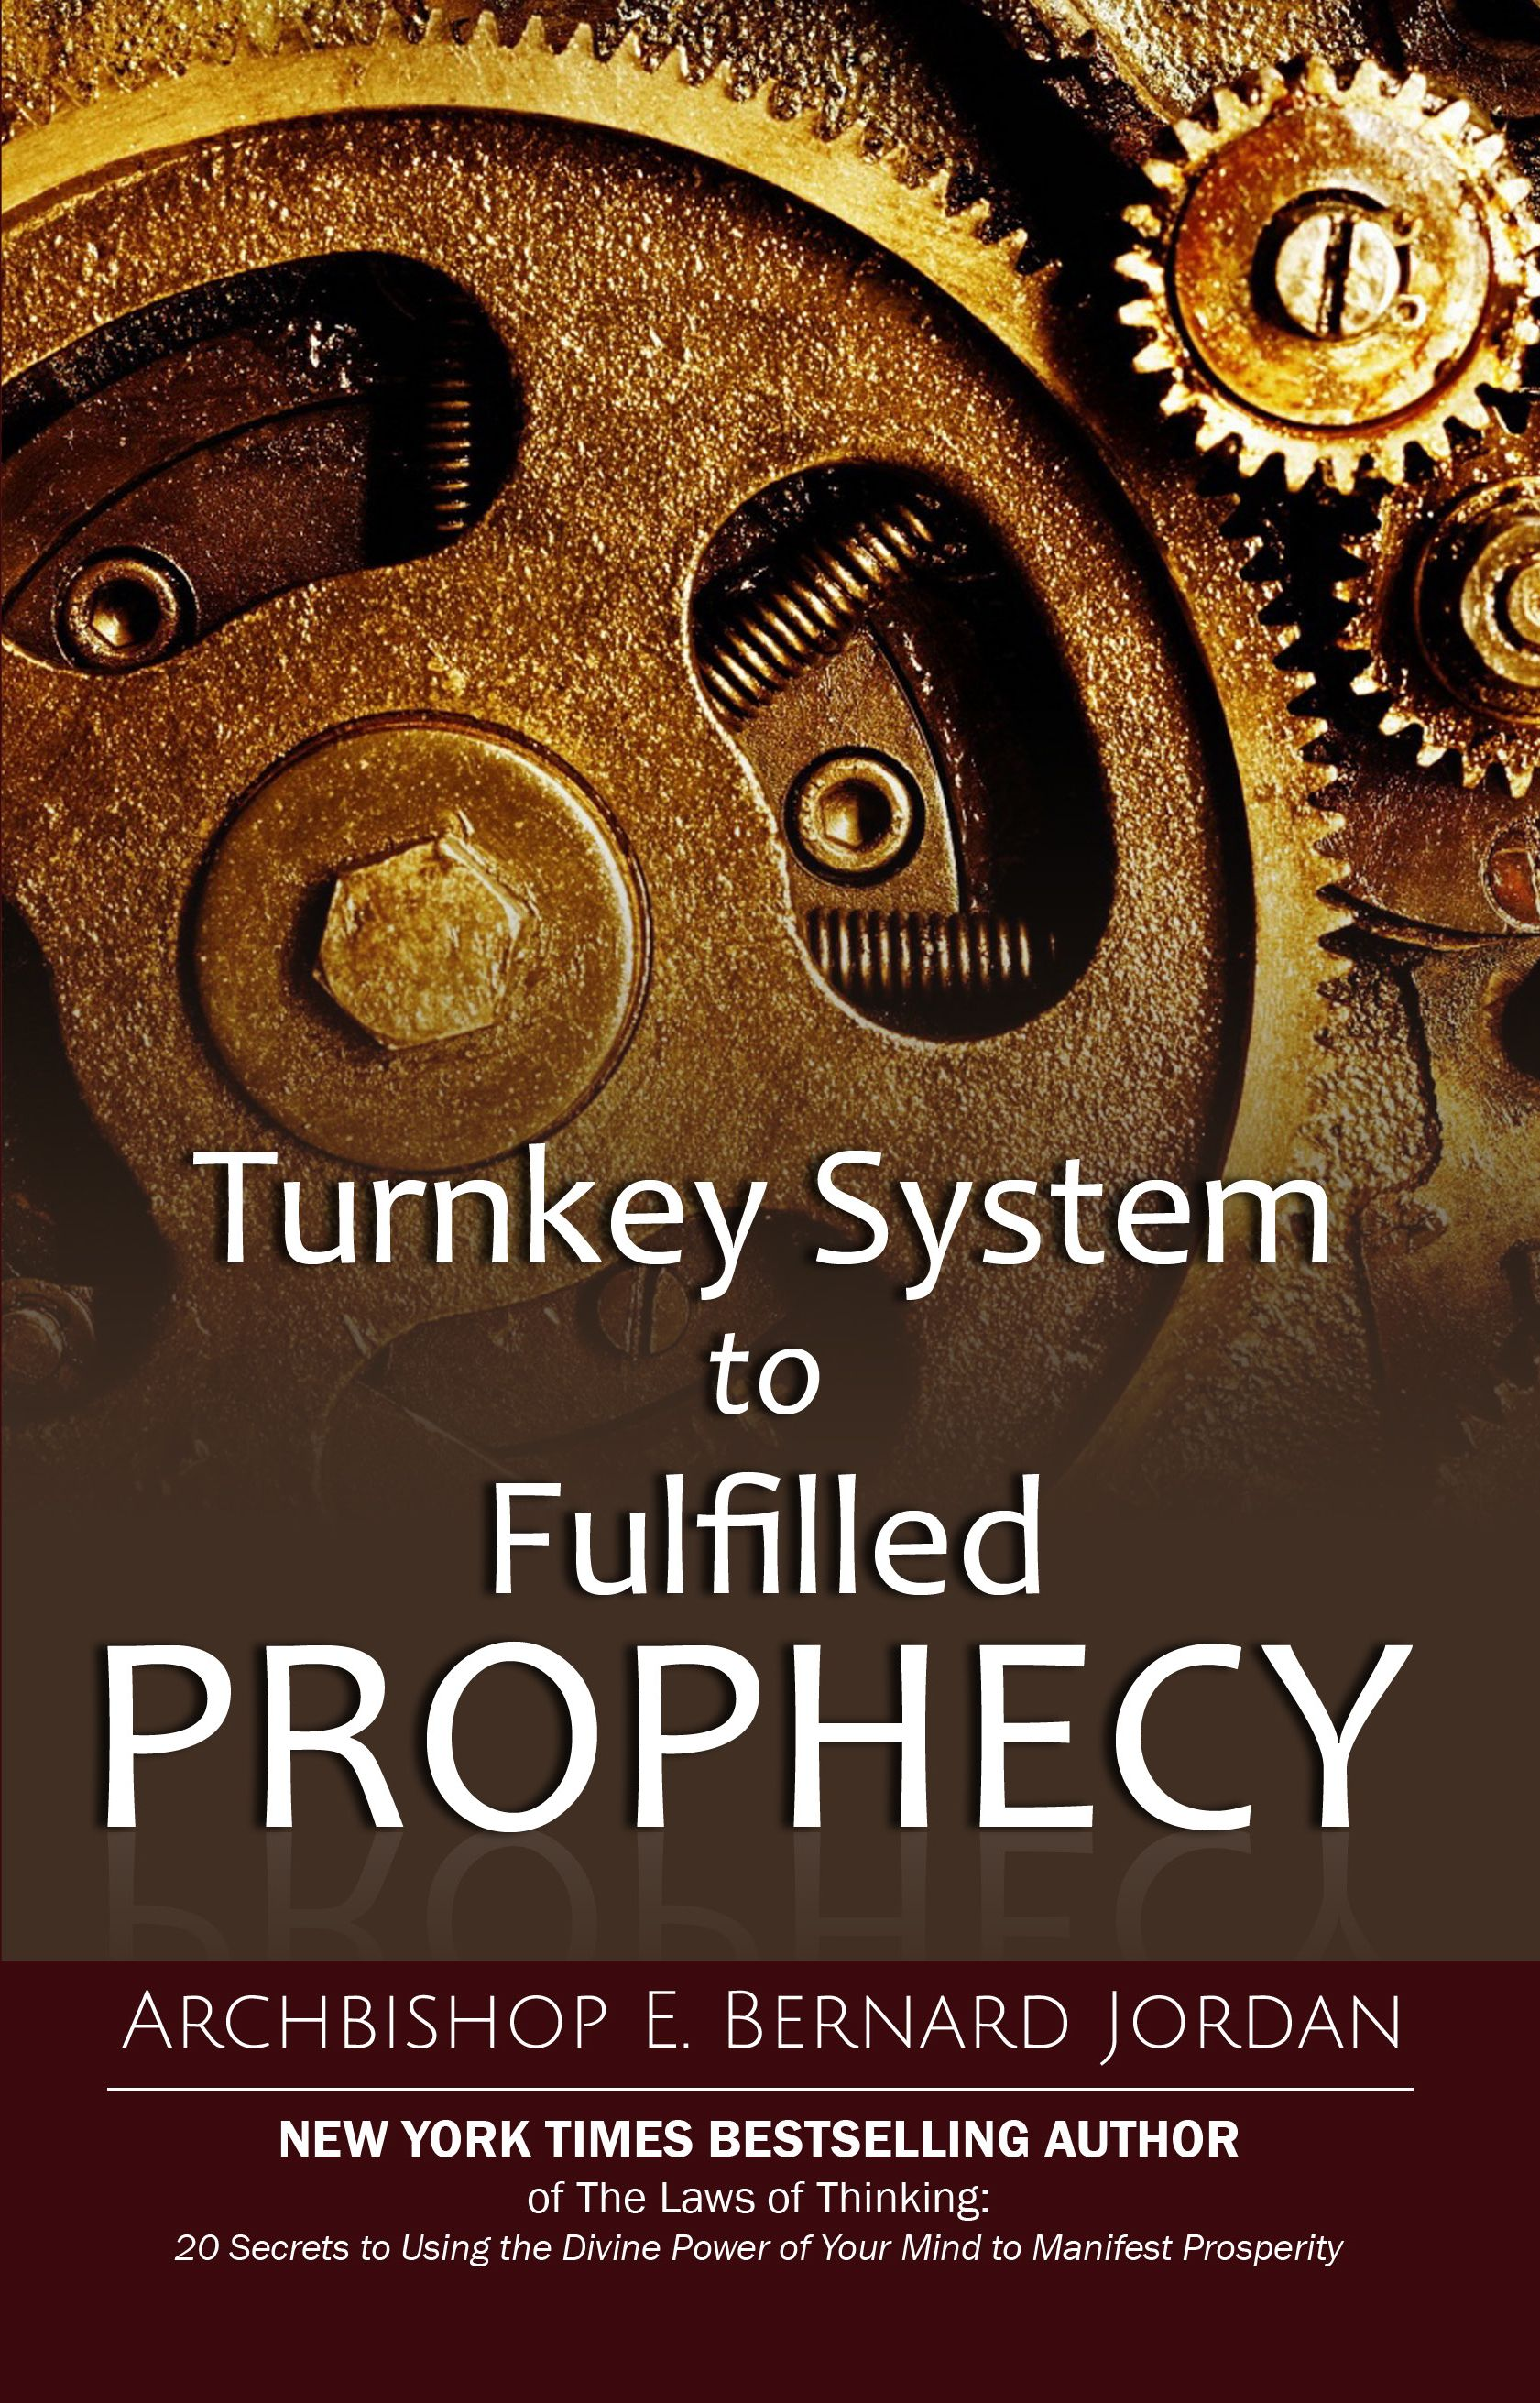 Turnkey System to Fulfilled Prophecy